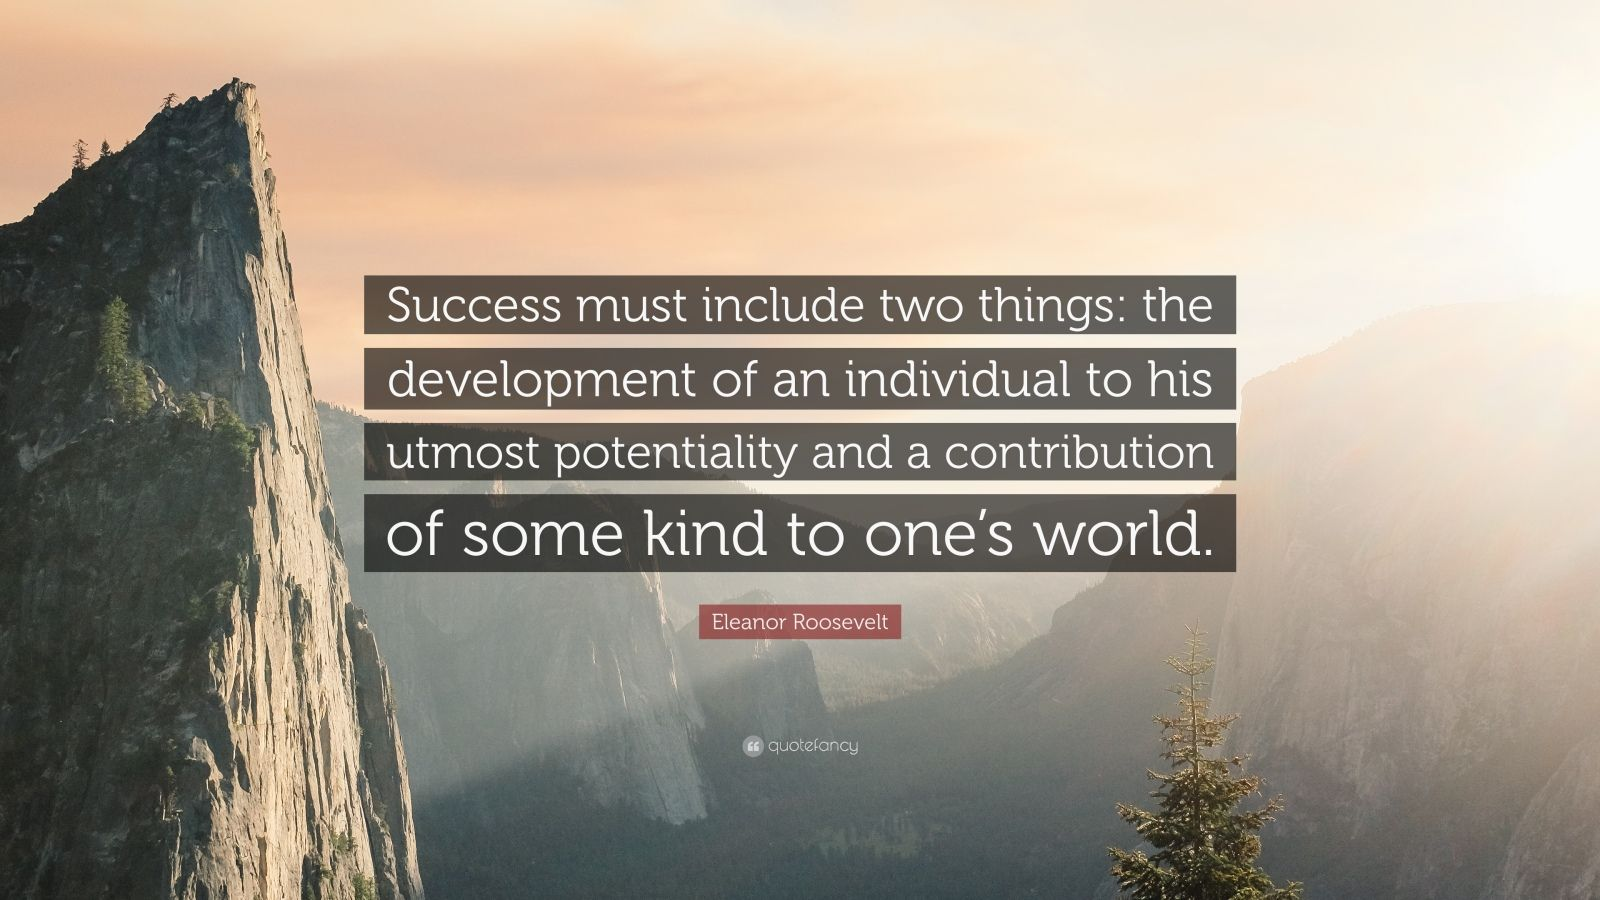 """Eleanor Roosevelt Quote: """"Success must include two things: the development of an individual to his utmost potentiality and a contribution of some kind to one's world."""""""